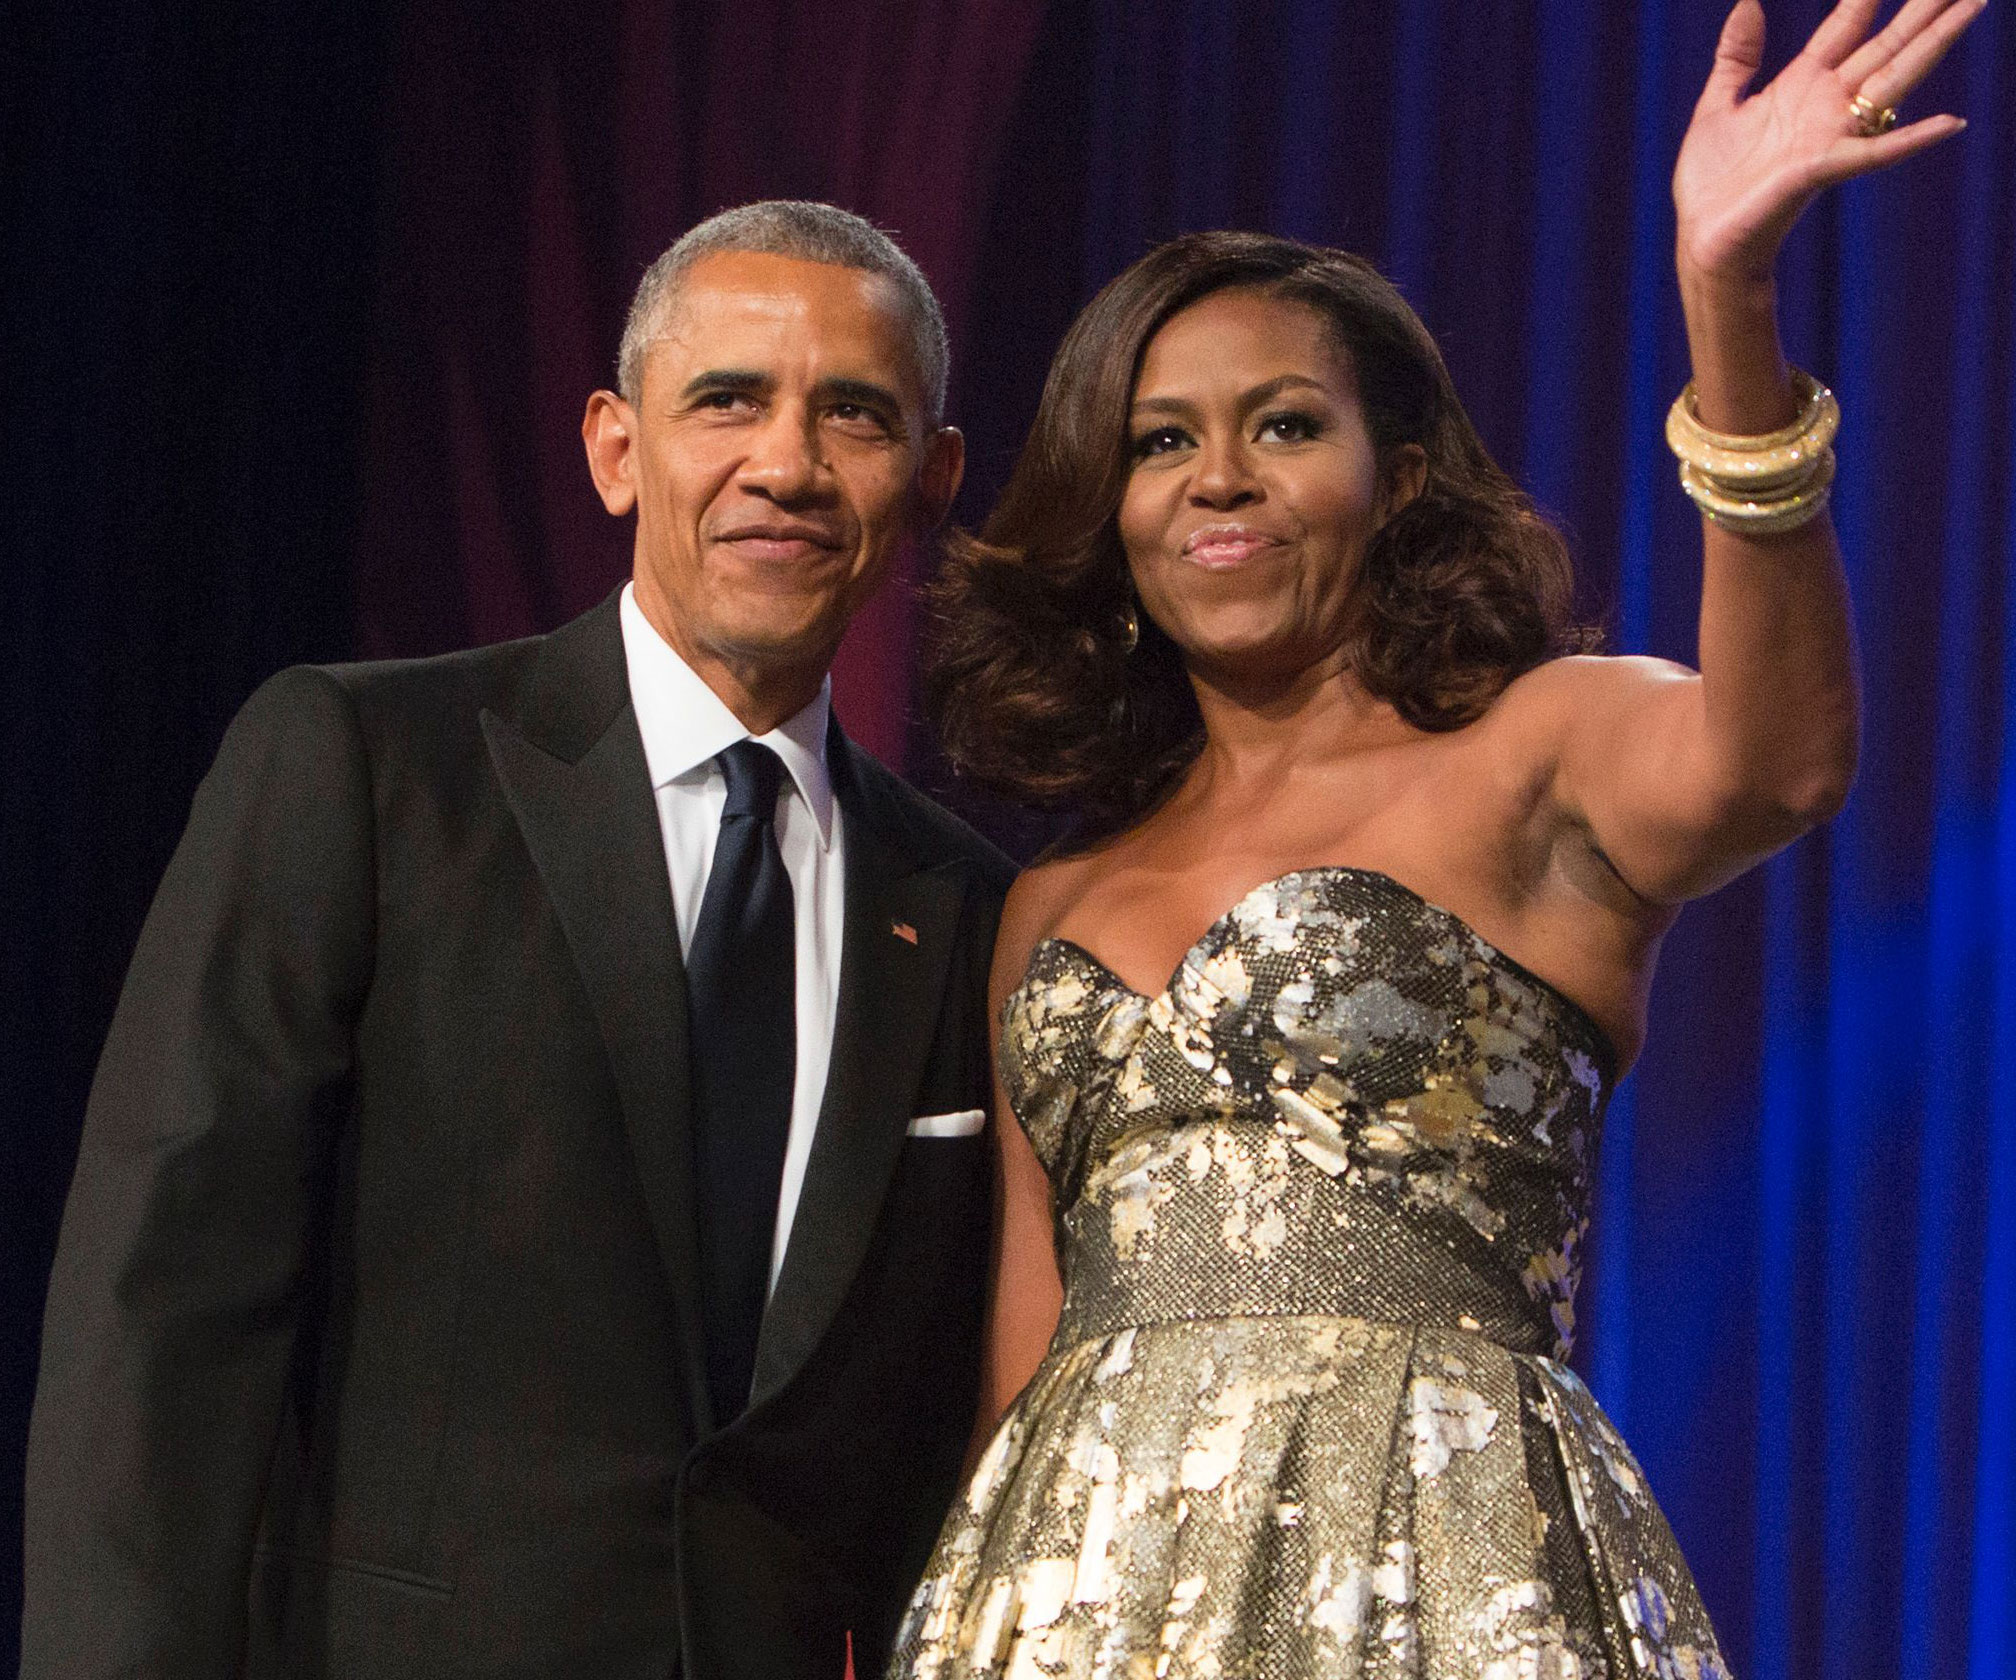 Barrack, Michelle Obama in talks to produce new Netflix shows